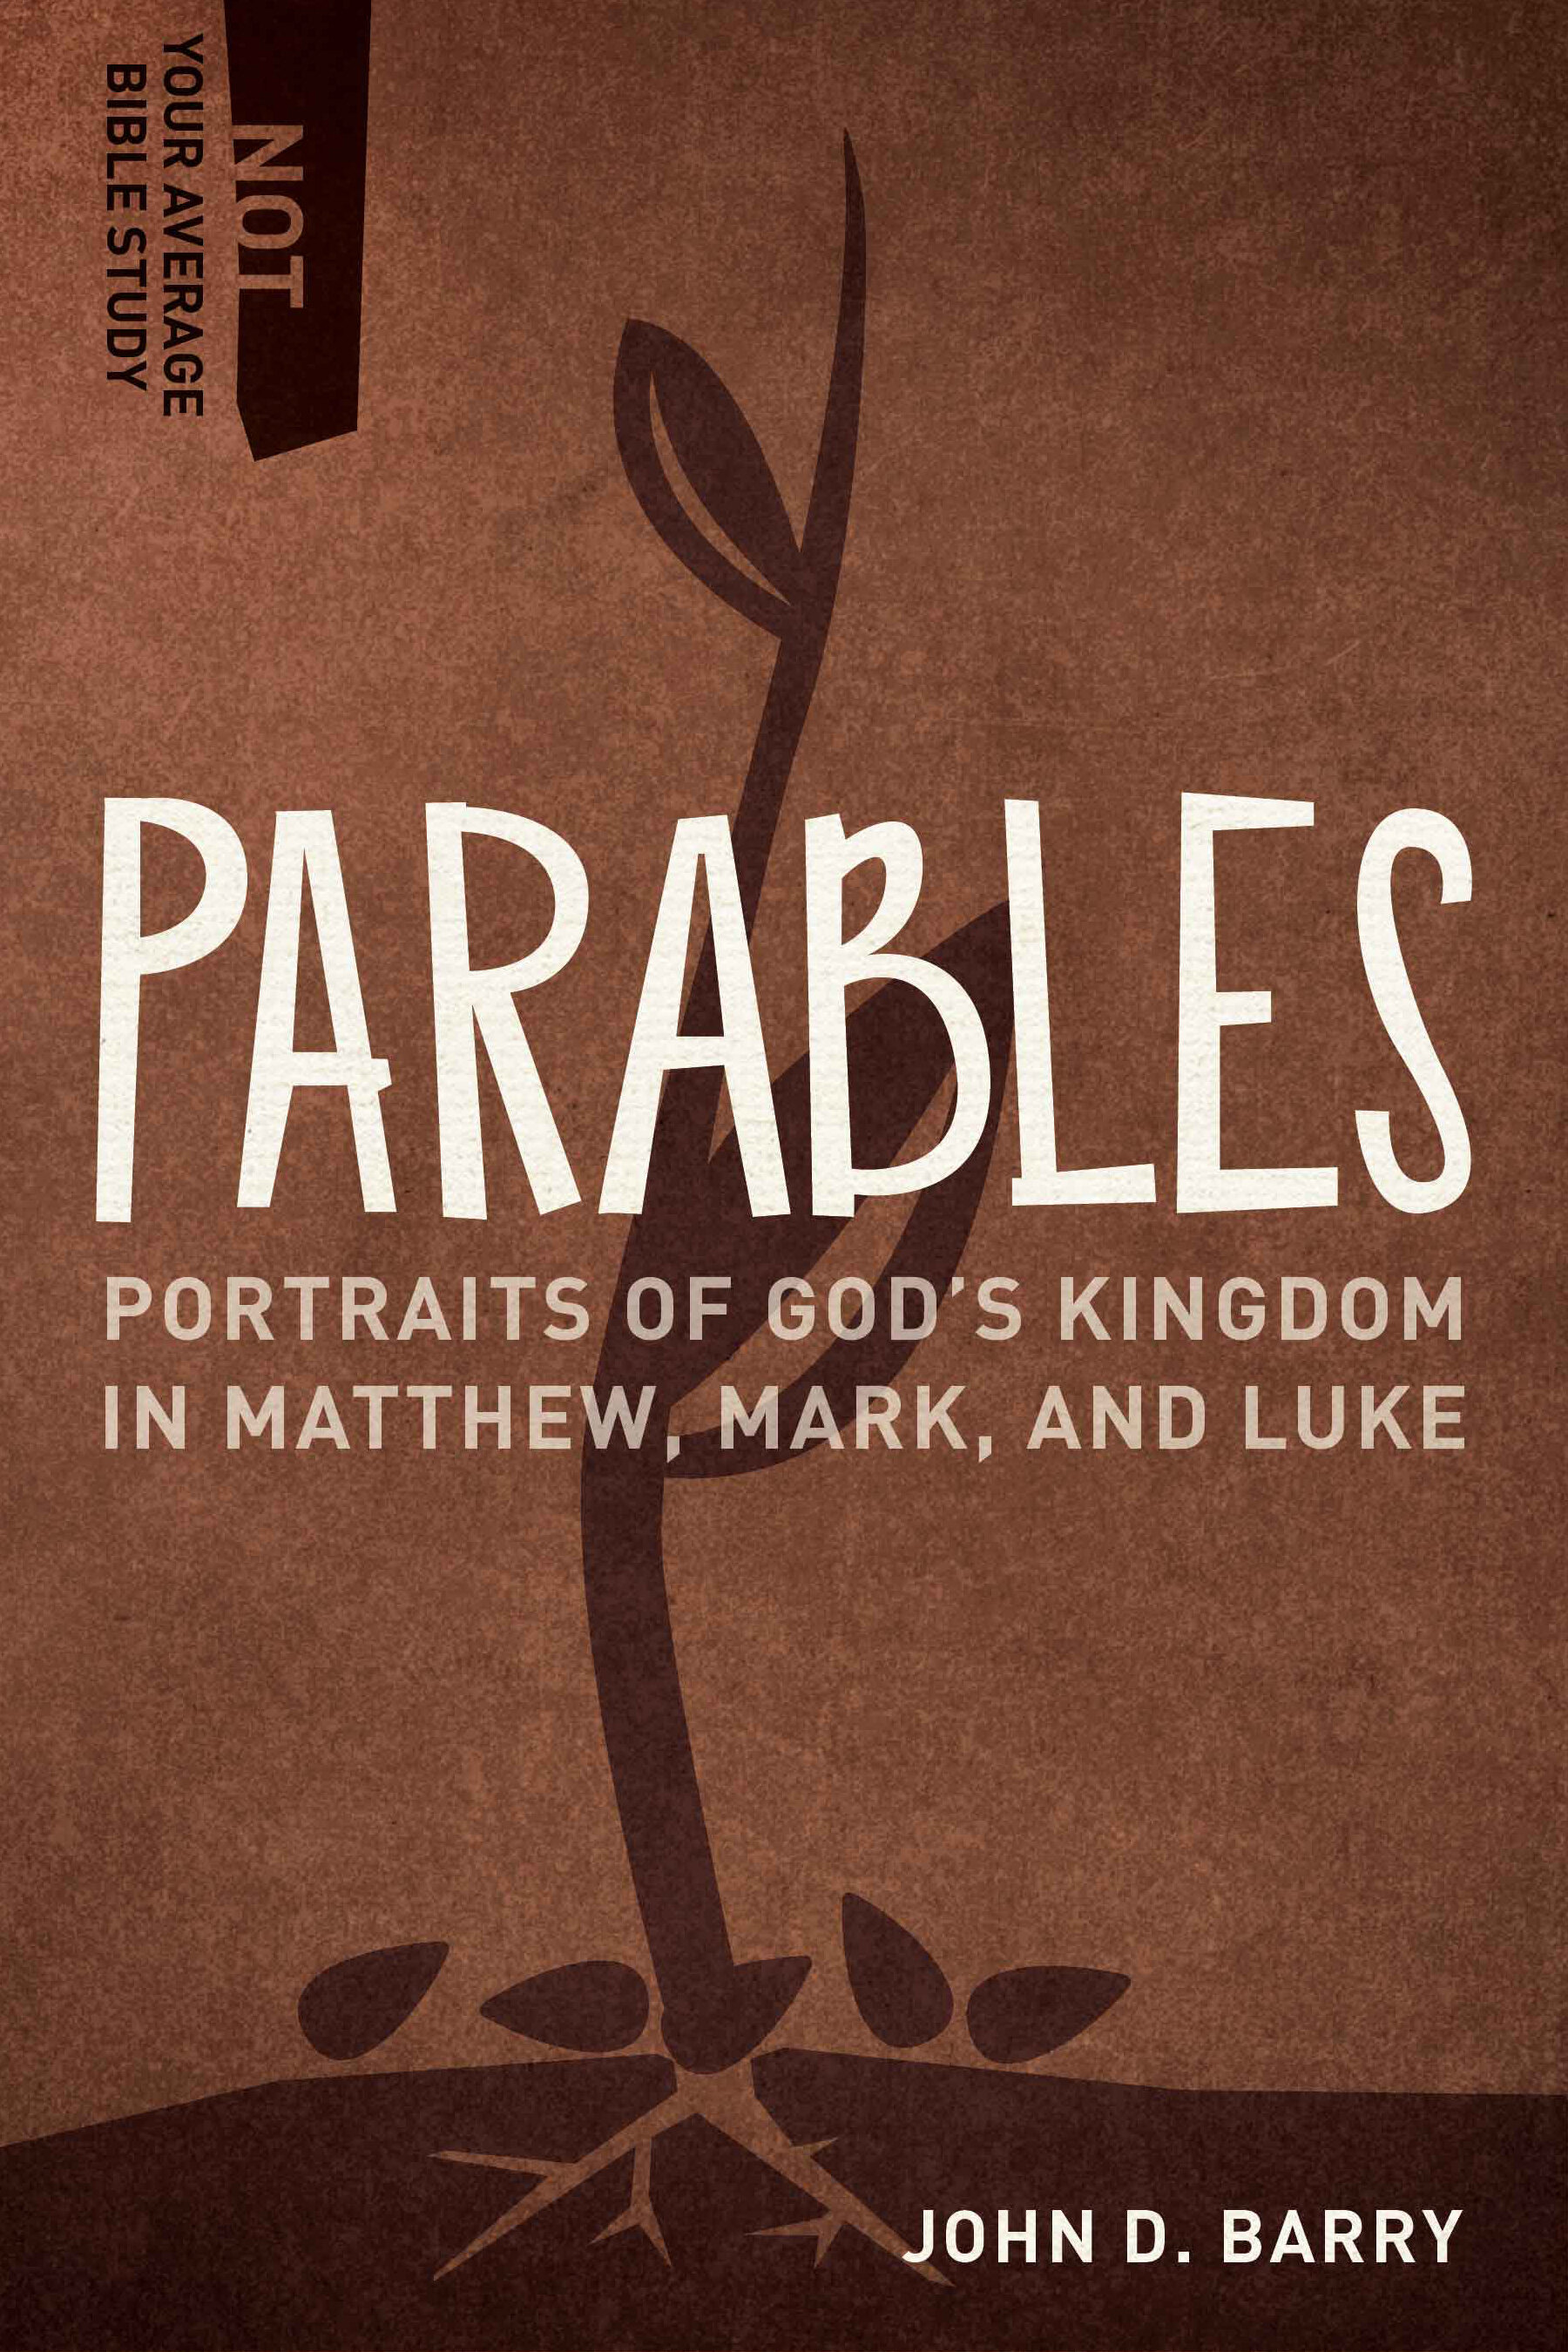 Parables: Portraits of God's Kingdom in Matthew, Mark, and Luke (Not Your Average Bible Study)